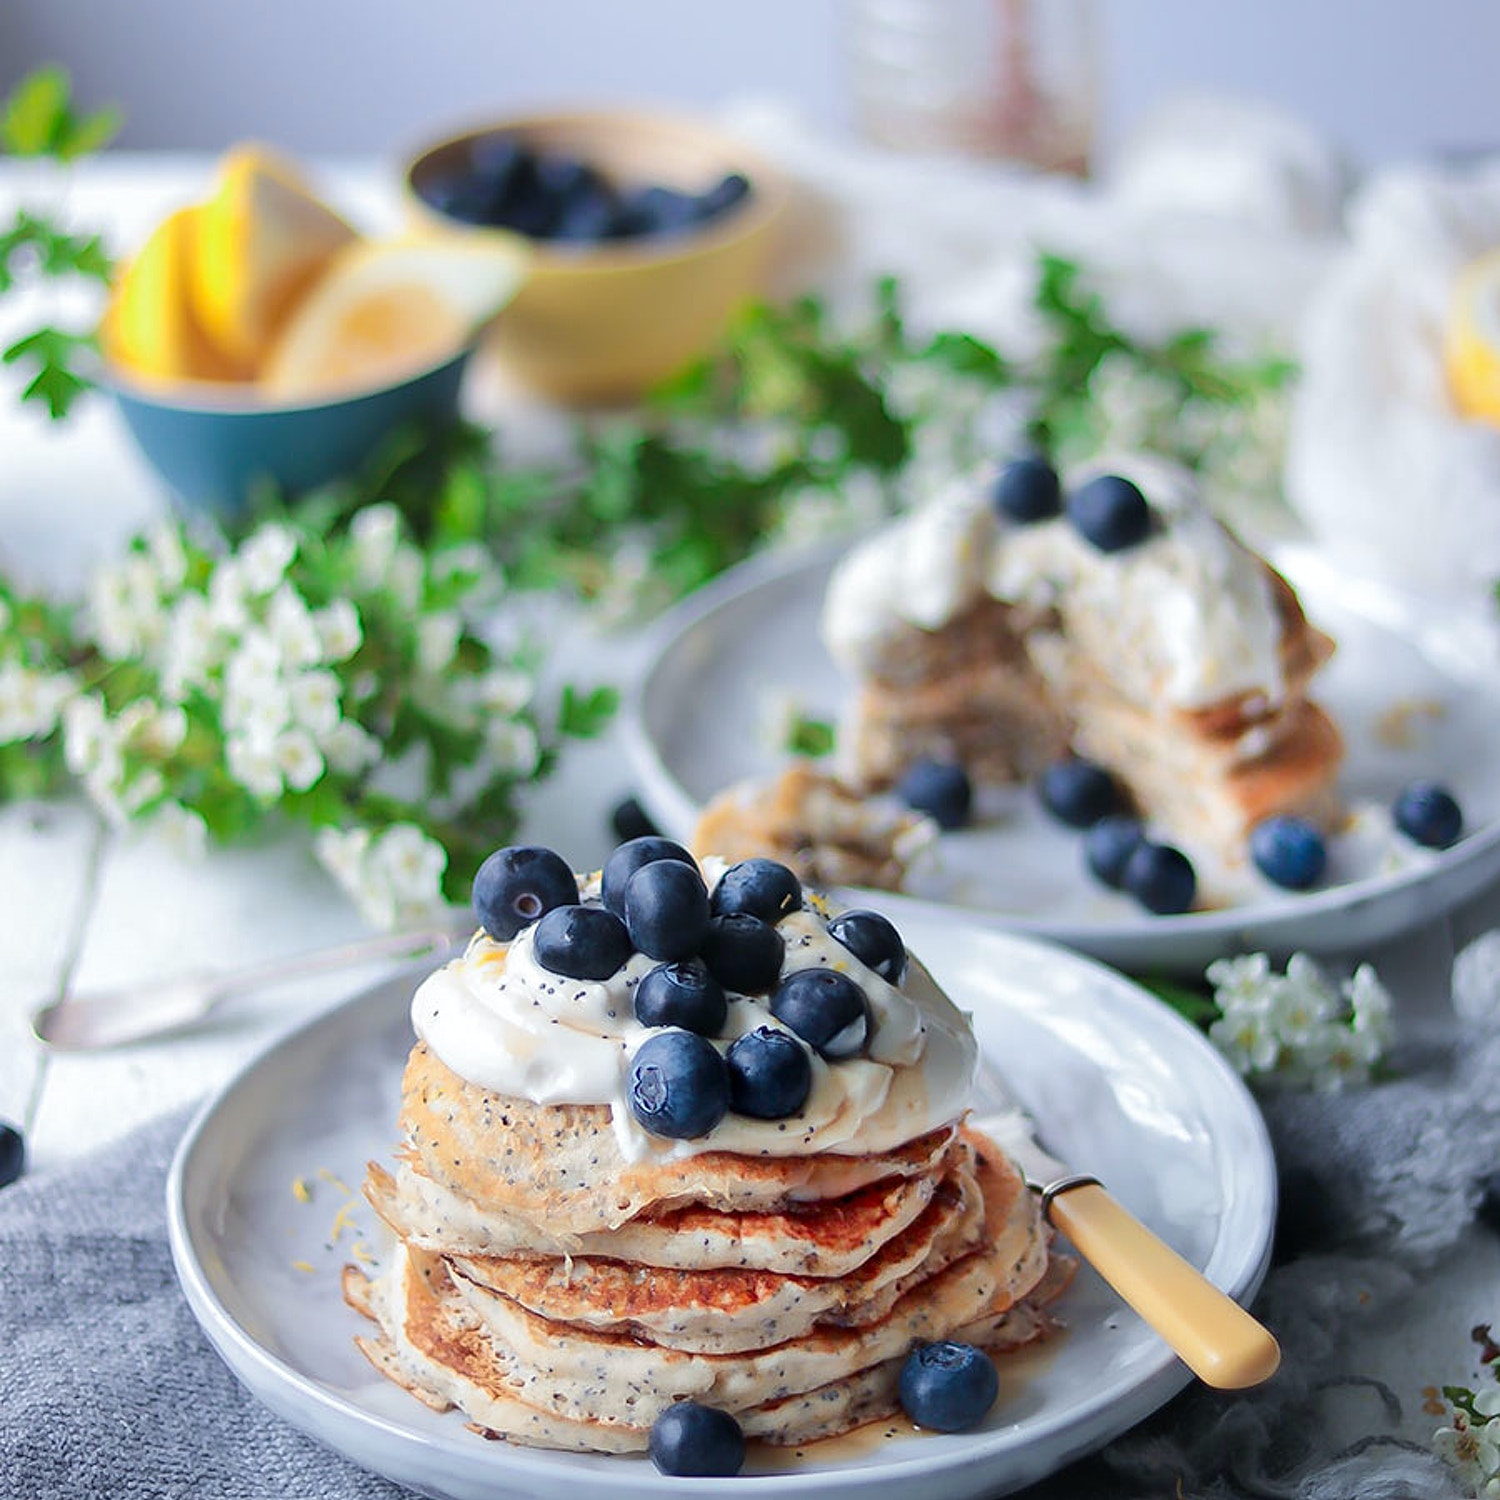 Lemon and Poppy Seed Pancakes with Creamy Cheese and Yogurt Topping